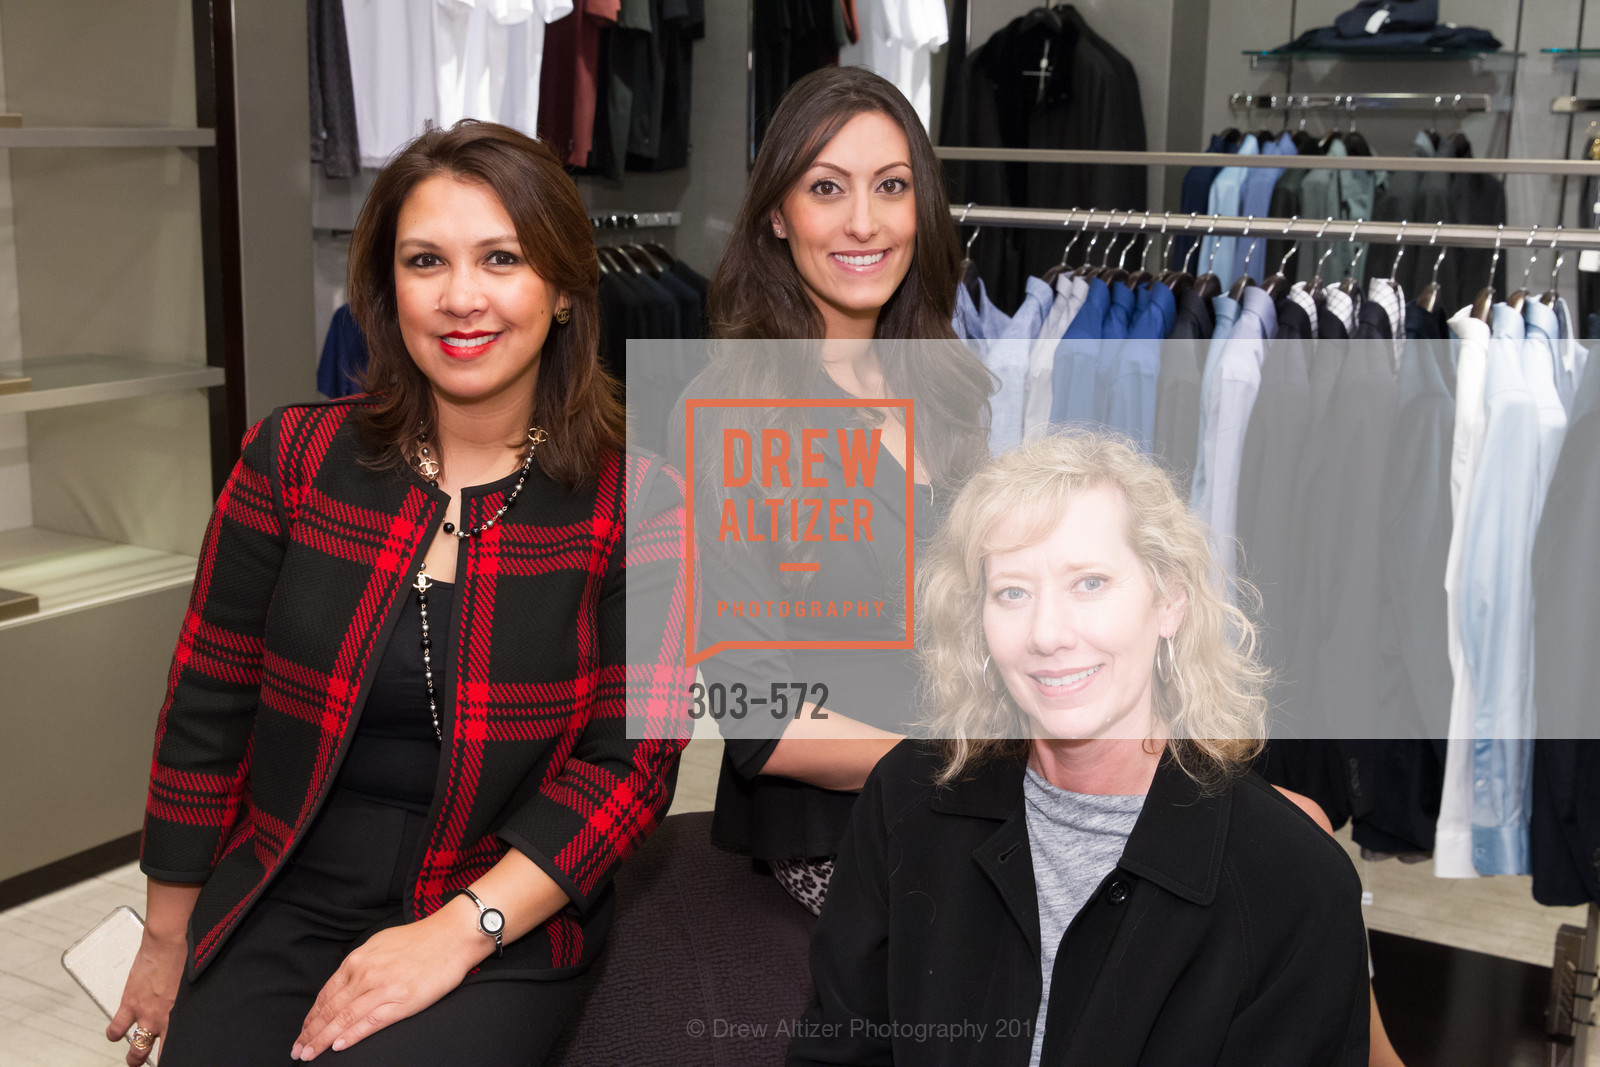 Julie Agbulos, Lori Schlindwein, Diane Lively, Neiman Marcus Walnut Creek welcomes neighbors ROOFTOP and Teleferic Barcelona, Neiman Marcus. 1000 South Main Street, November 20th, 2015,Drew Altizer, Drew Altizer Photography, full-service event agency, private events, San Francisco photographer, photographer California